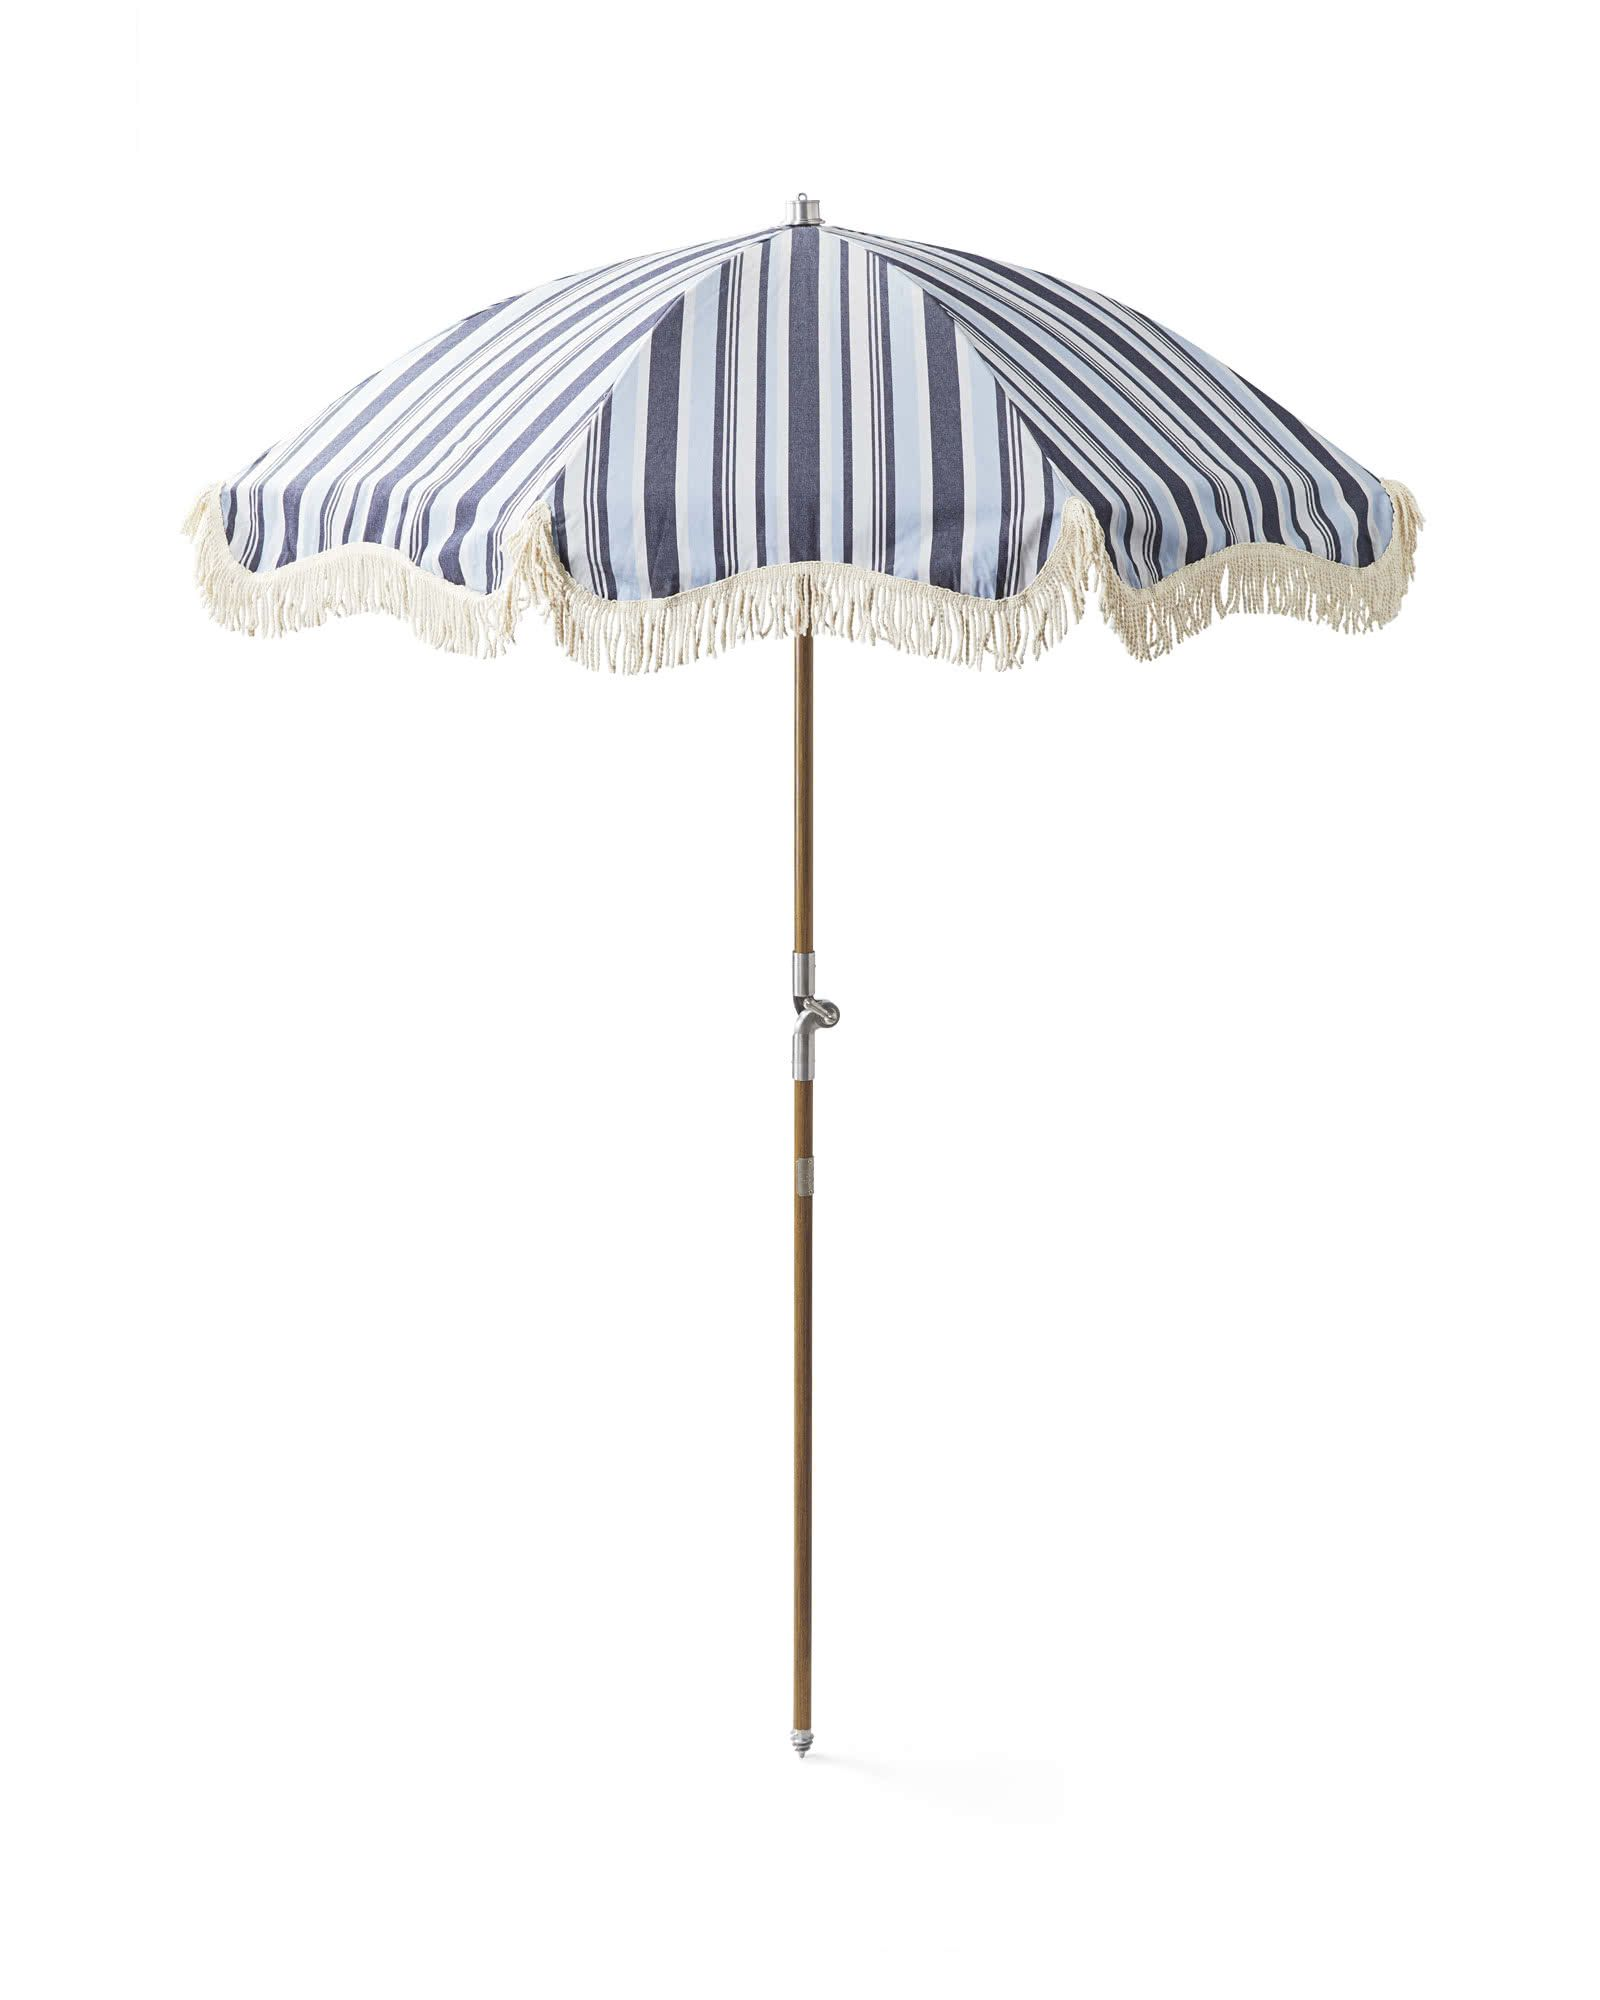 Hyannis Umbrella